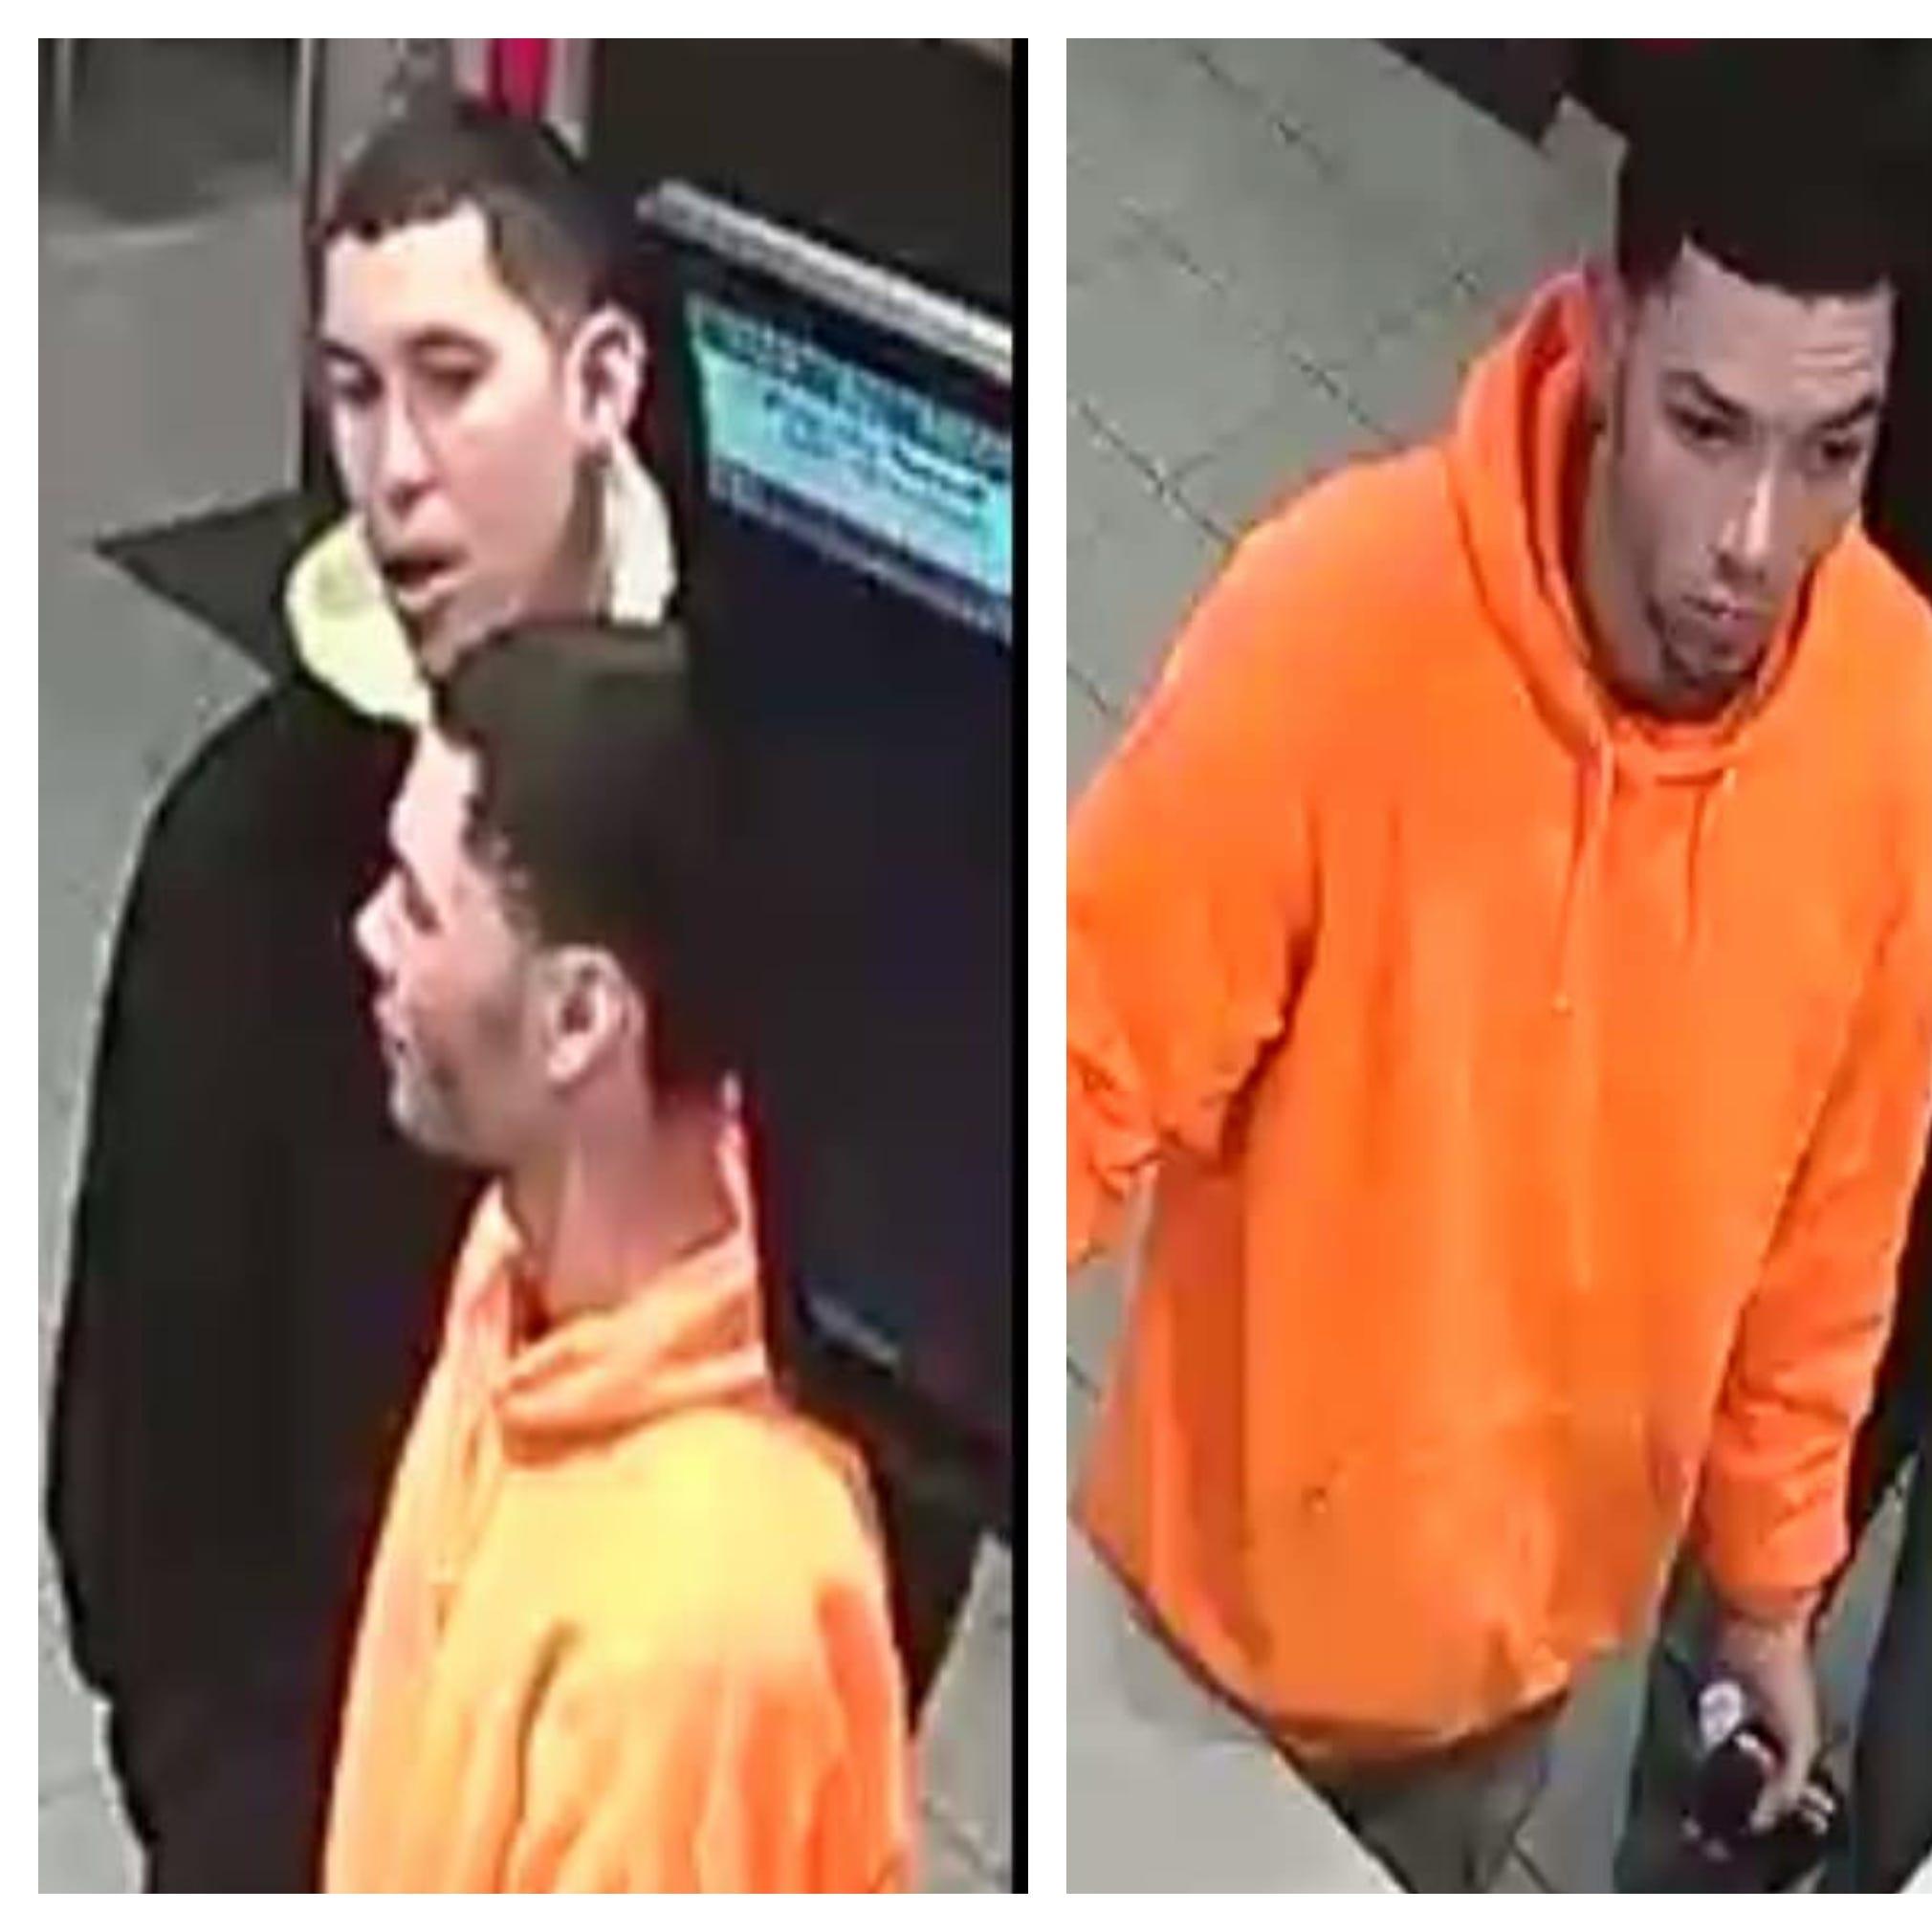 Police release images of 2 men accused of stabbing Des Moines McDonald's employee over $11 drive-thru order